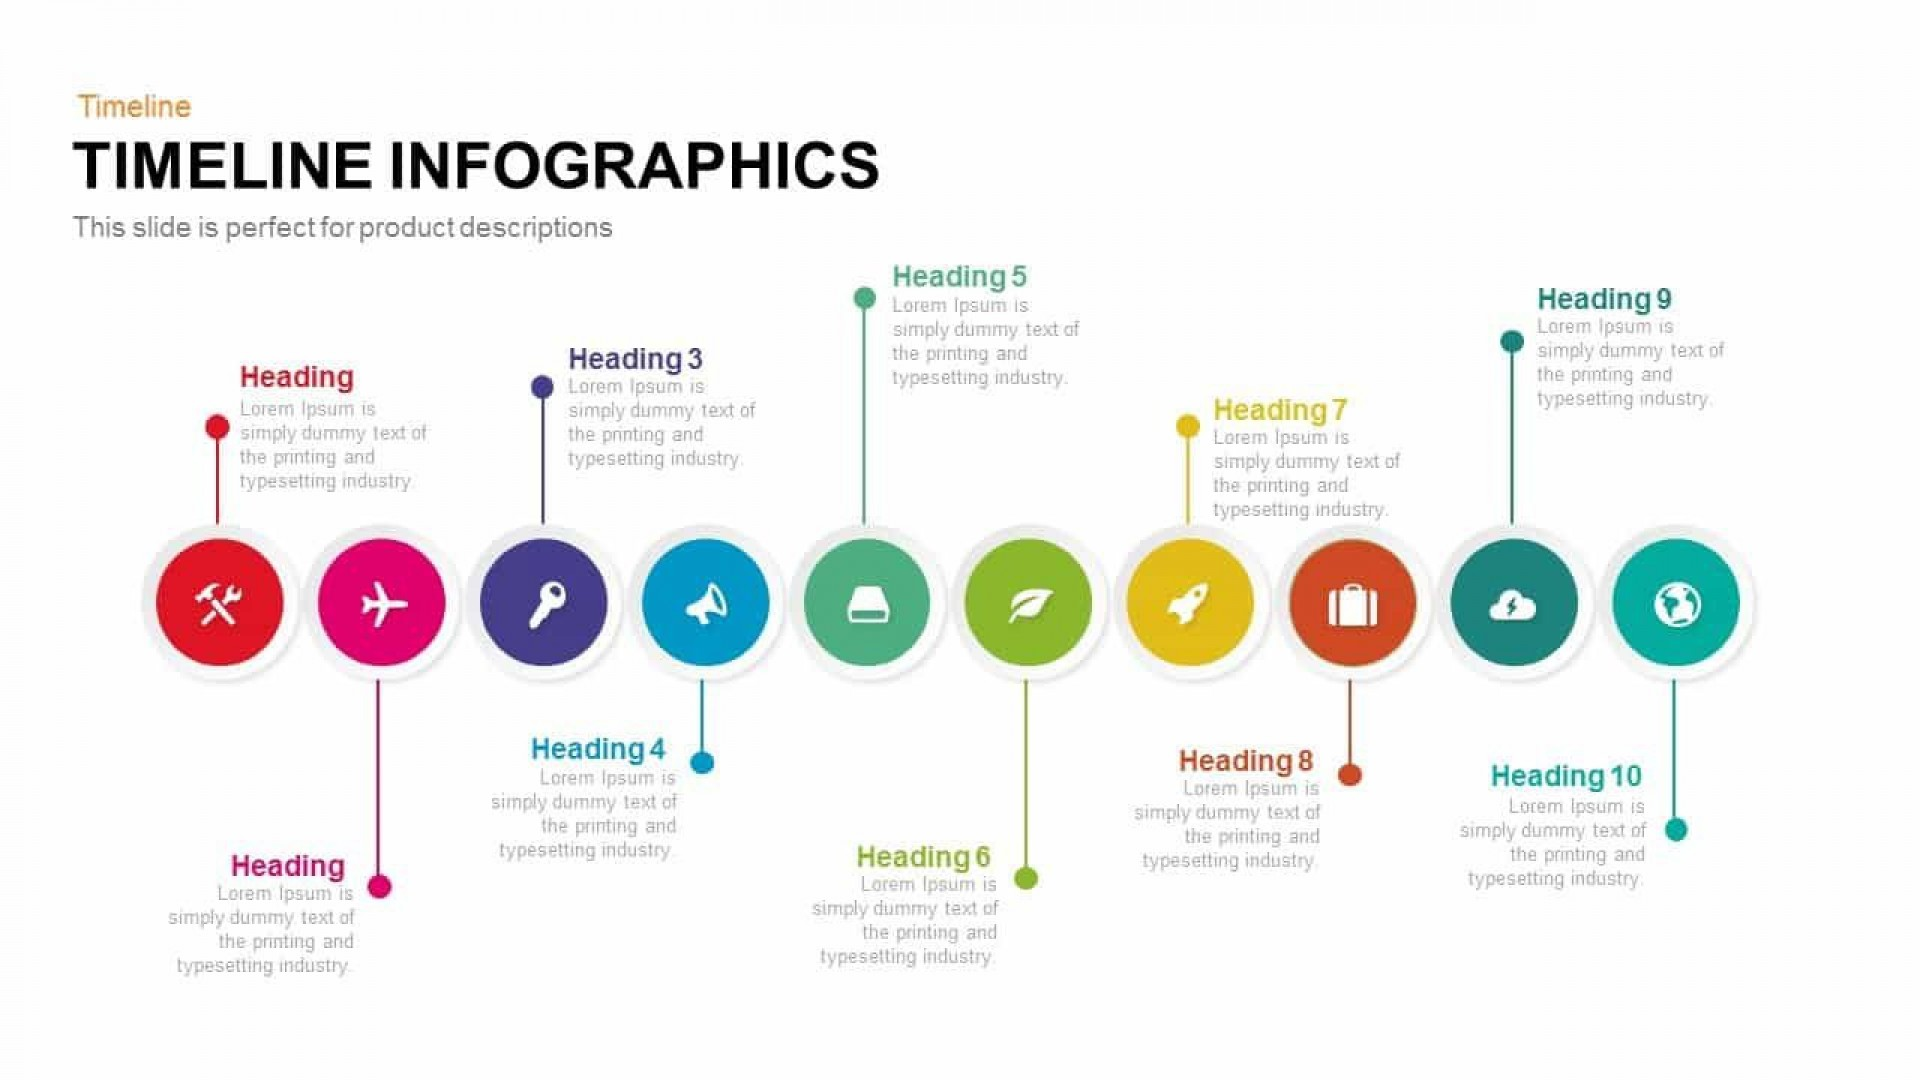 006 Fascinating Timeline Template Pptx Design  Powerpoint Project1920